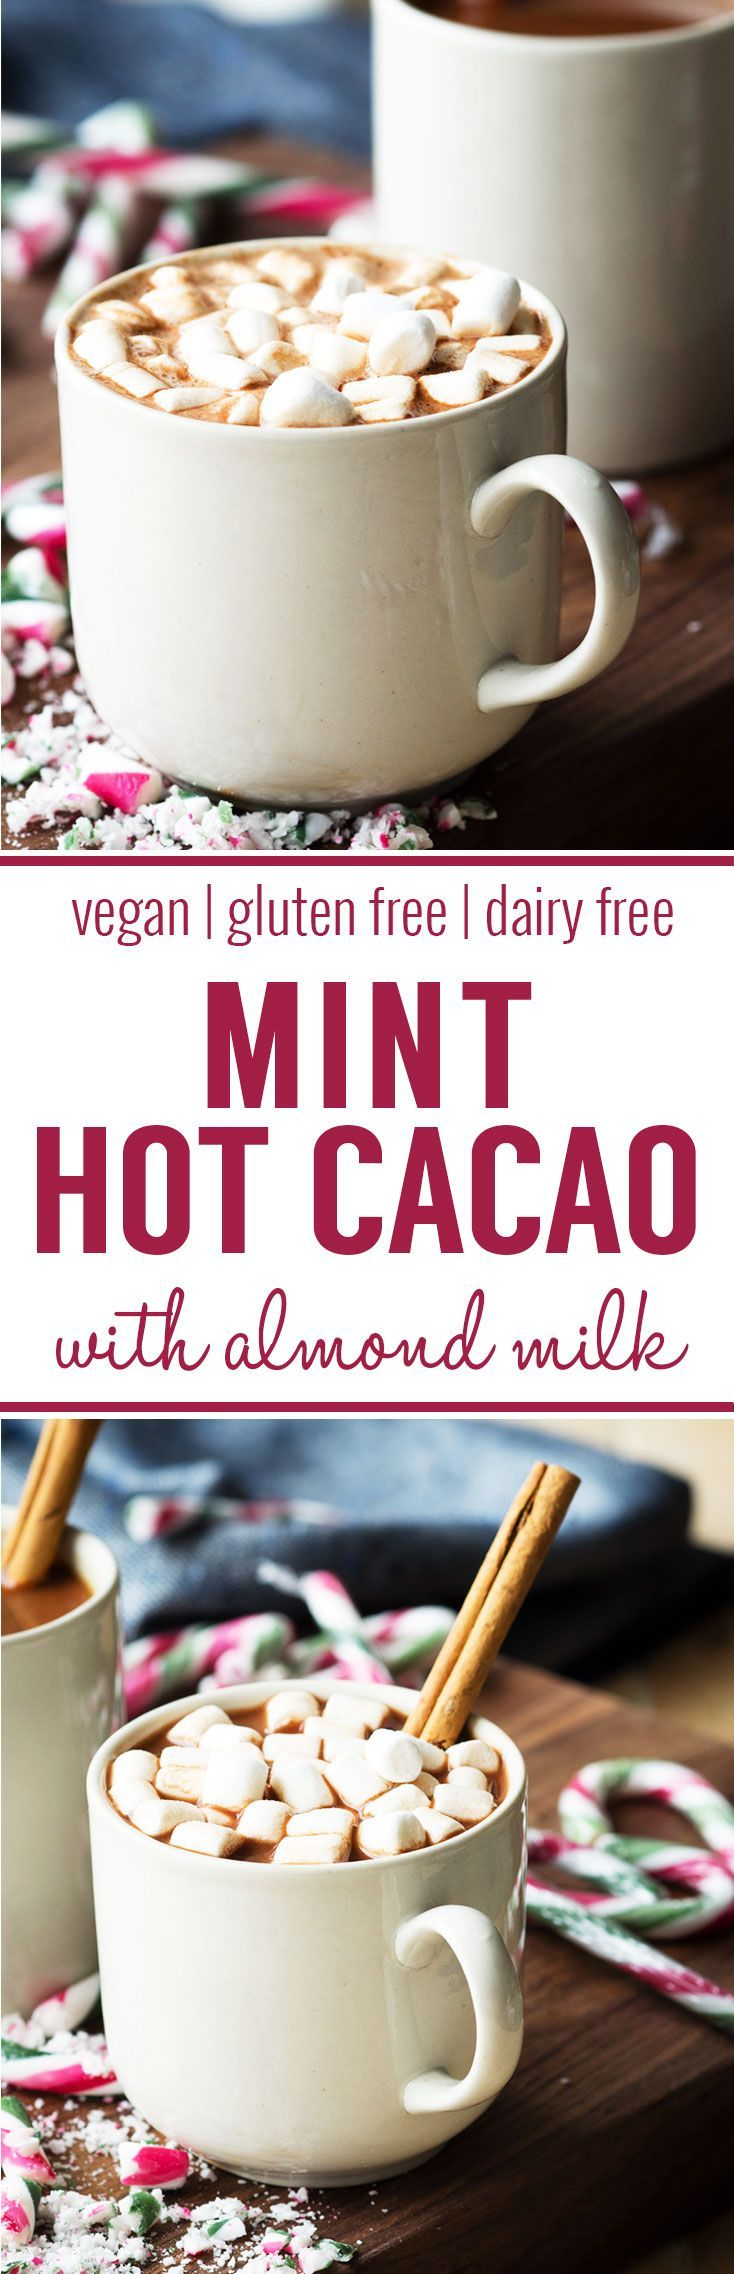 Mint Hot Cacao (Vegan, Gluten Free, Dairy Free). A delicious warm drink made with almond milk and perfect for the winter. Cacao is the minimally processed form of cocoa, and thus retains more nutrients, making it rich in antioxidants, iron, magnesium, pot